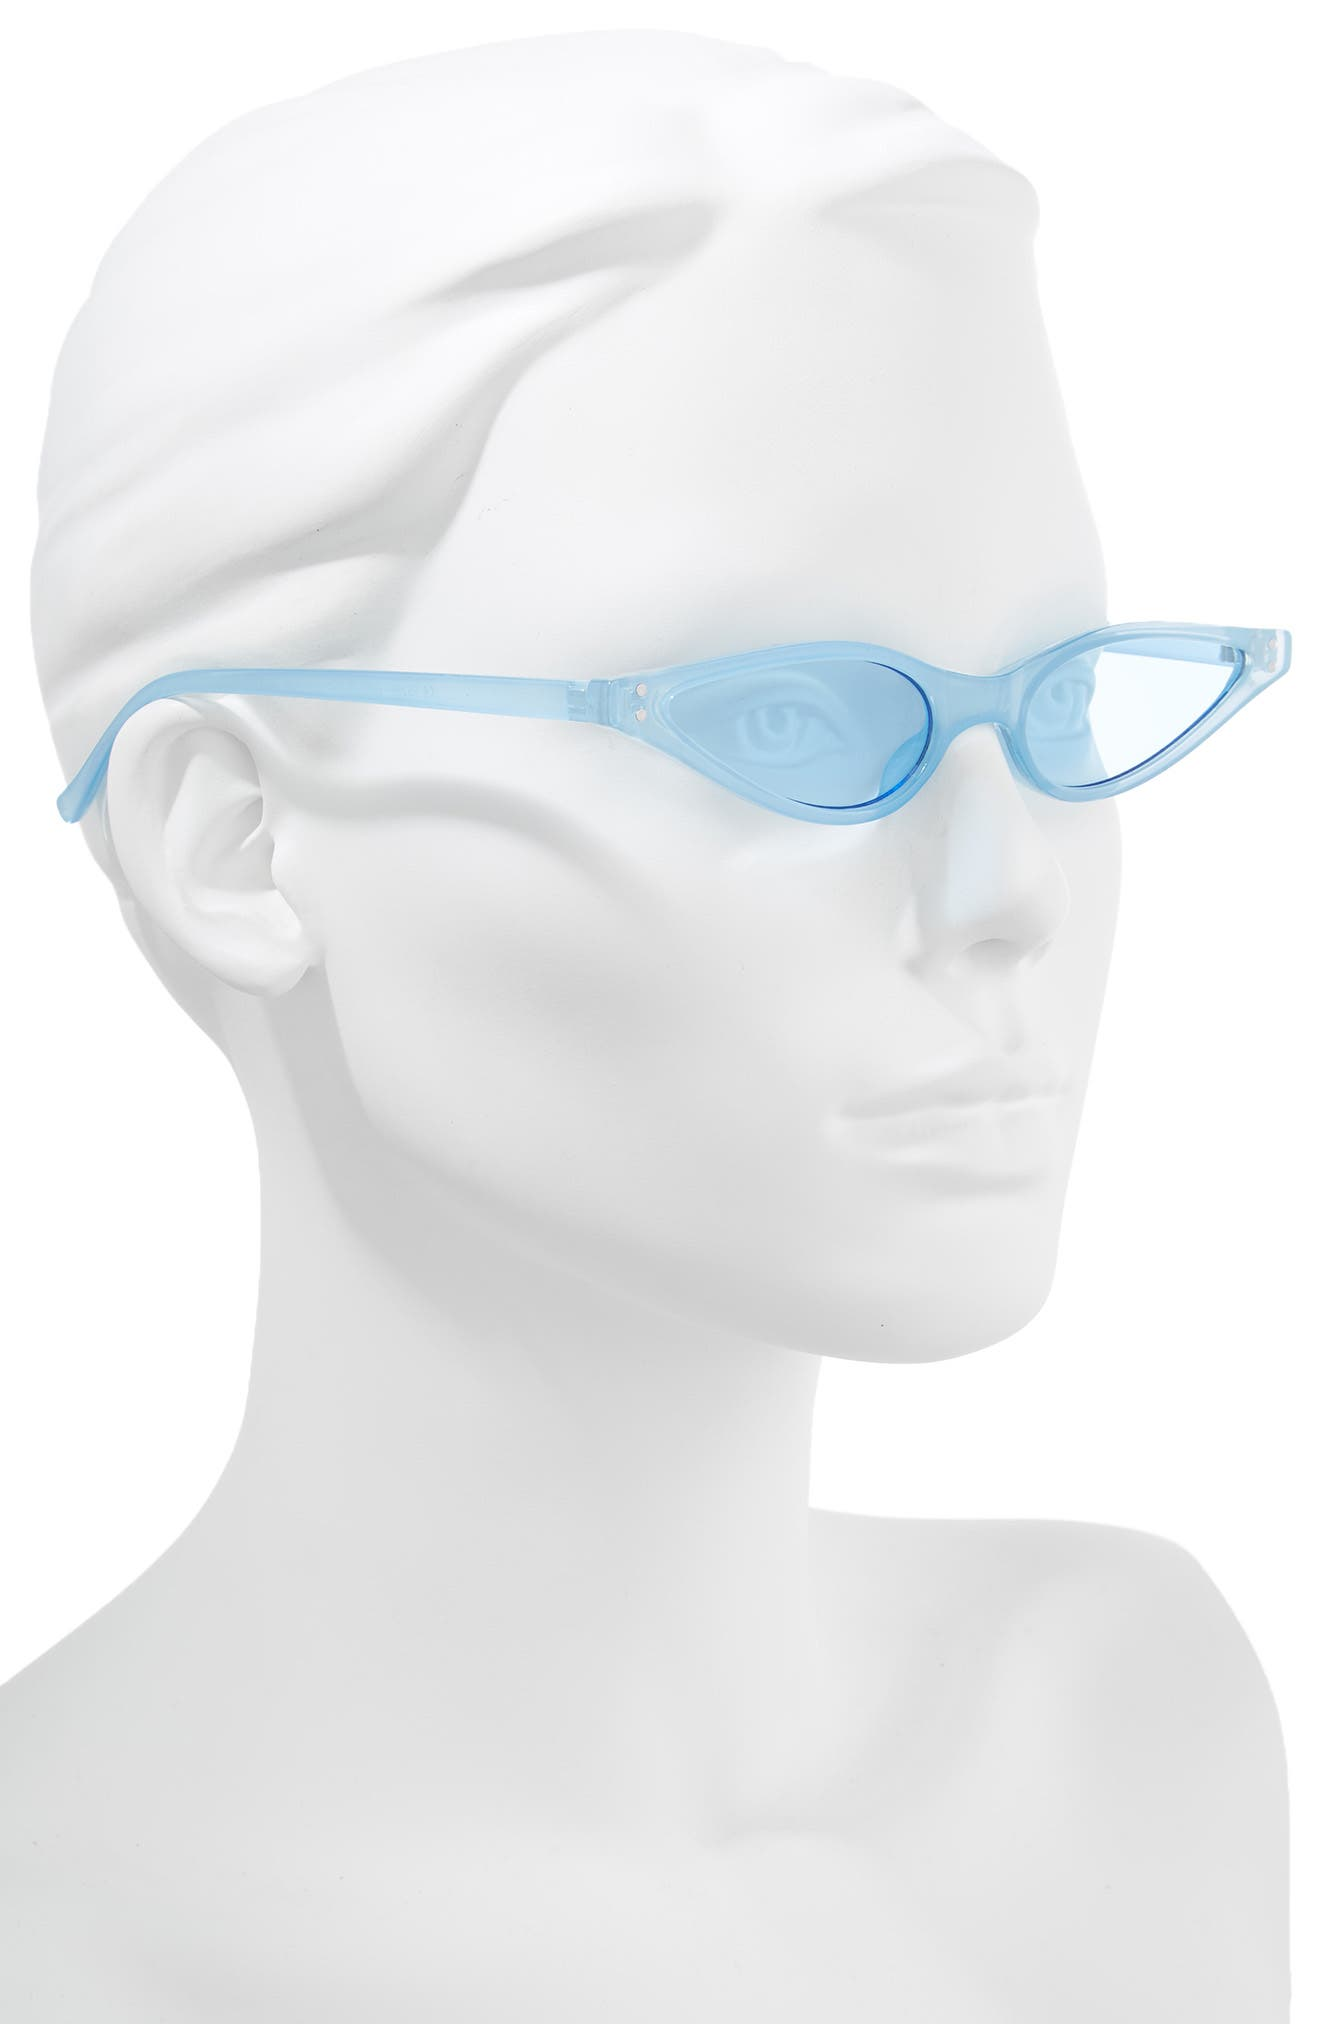 53mm Slim Cat Eye Sunglasses,                             Alternate thumbnail 2, color,                             LIGHT BLUE/ BLUE LENS